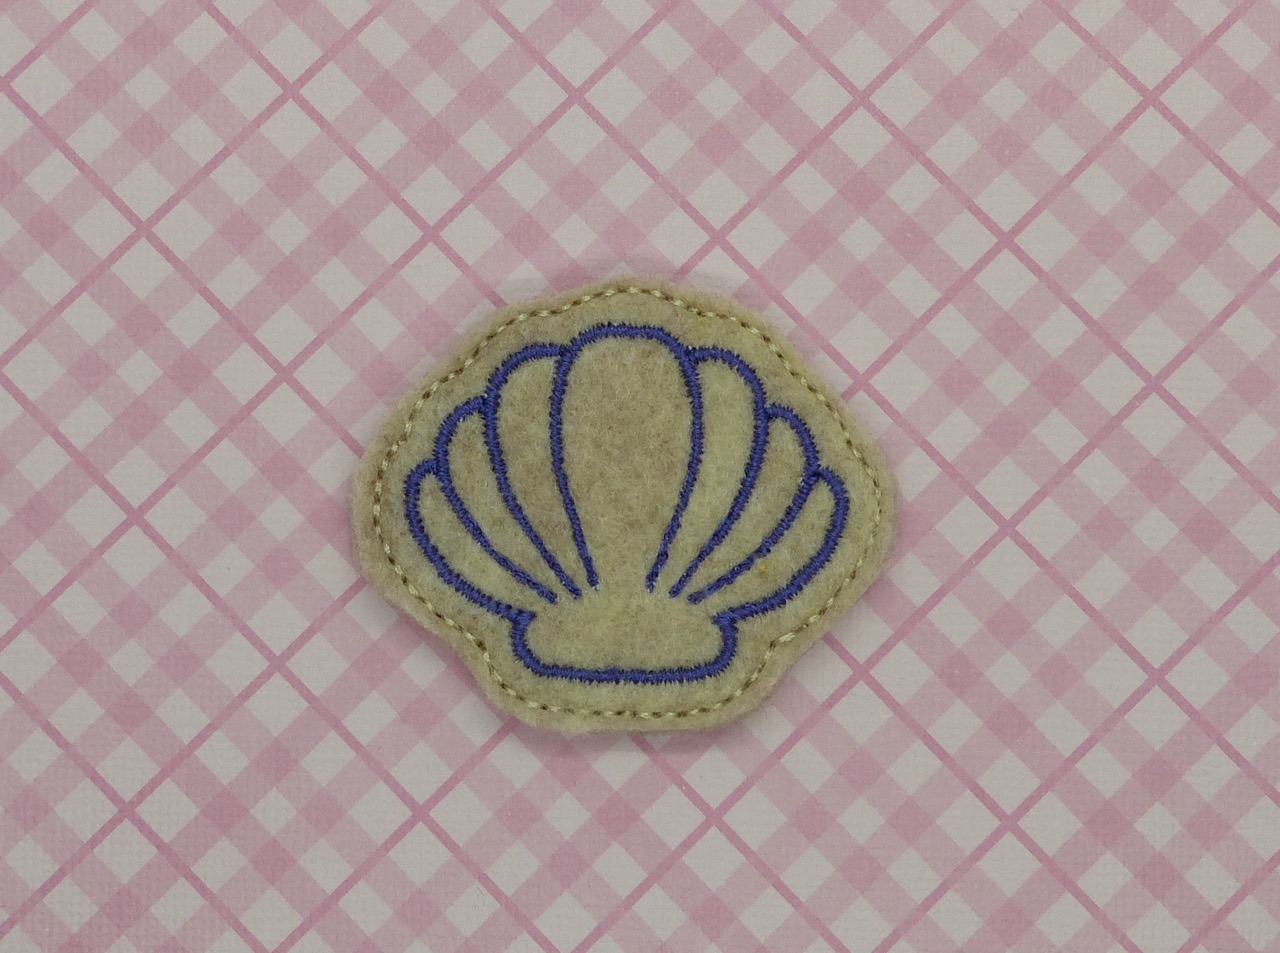 Shell Feltie Embroidery Design